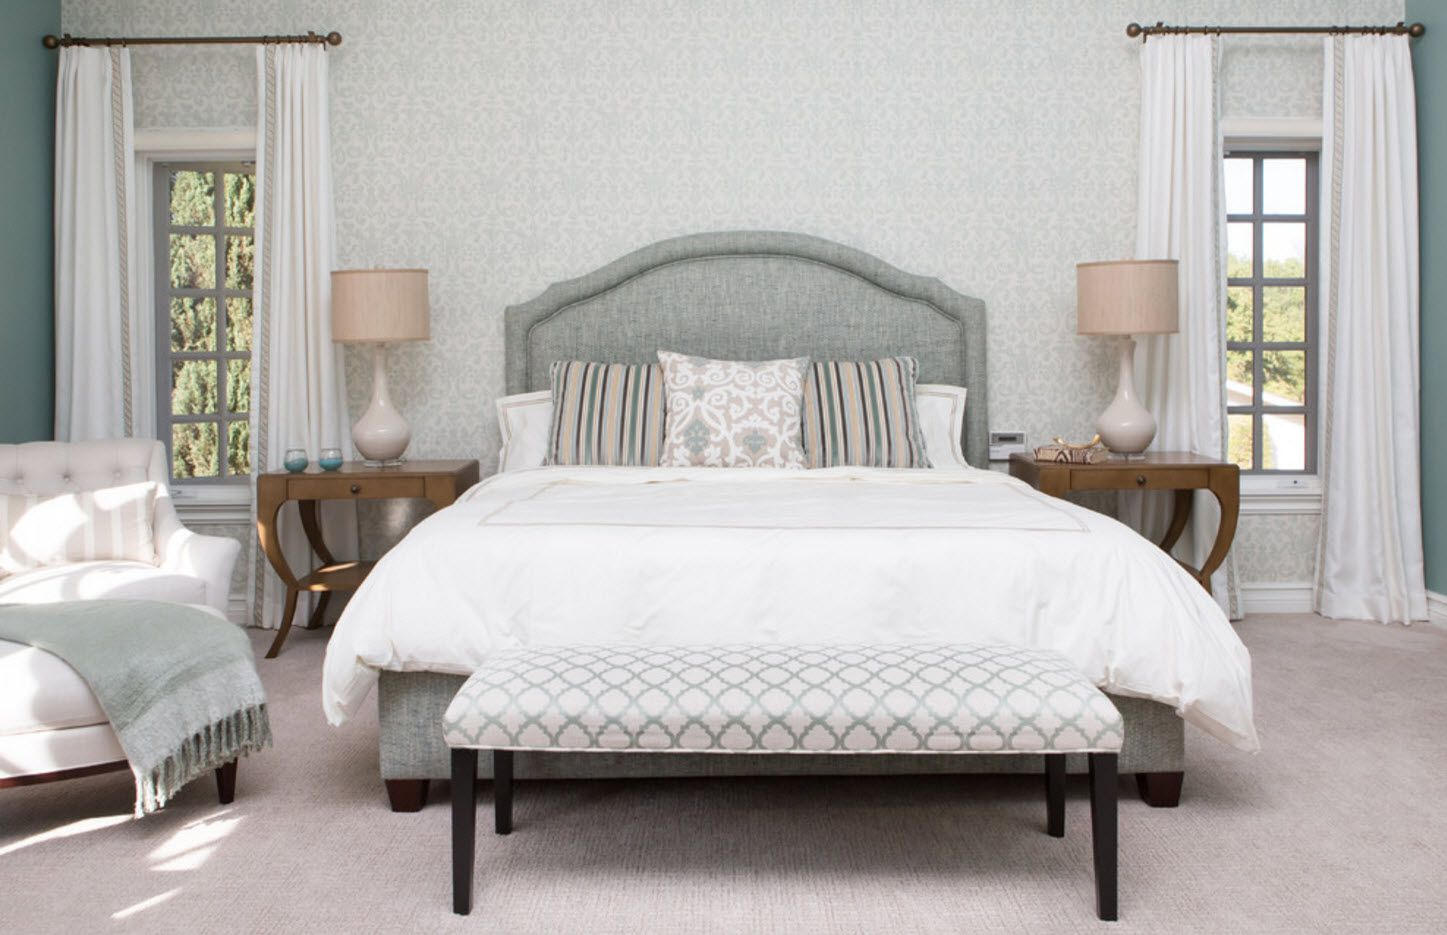 Mere Classic bed with the wavy upholstered ottoman